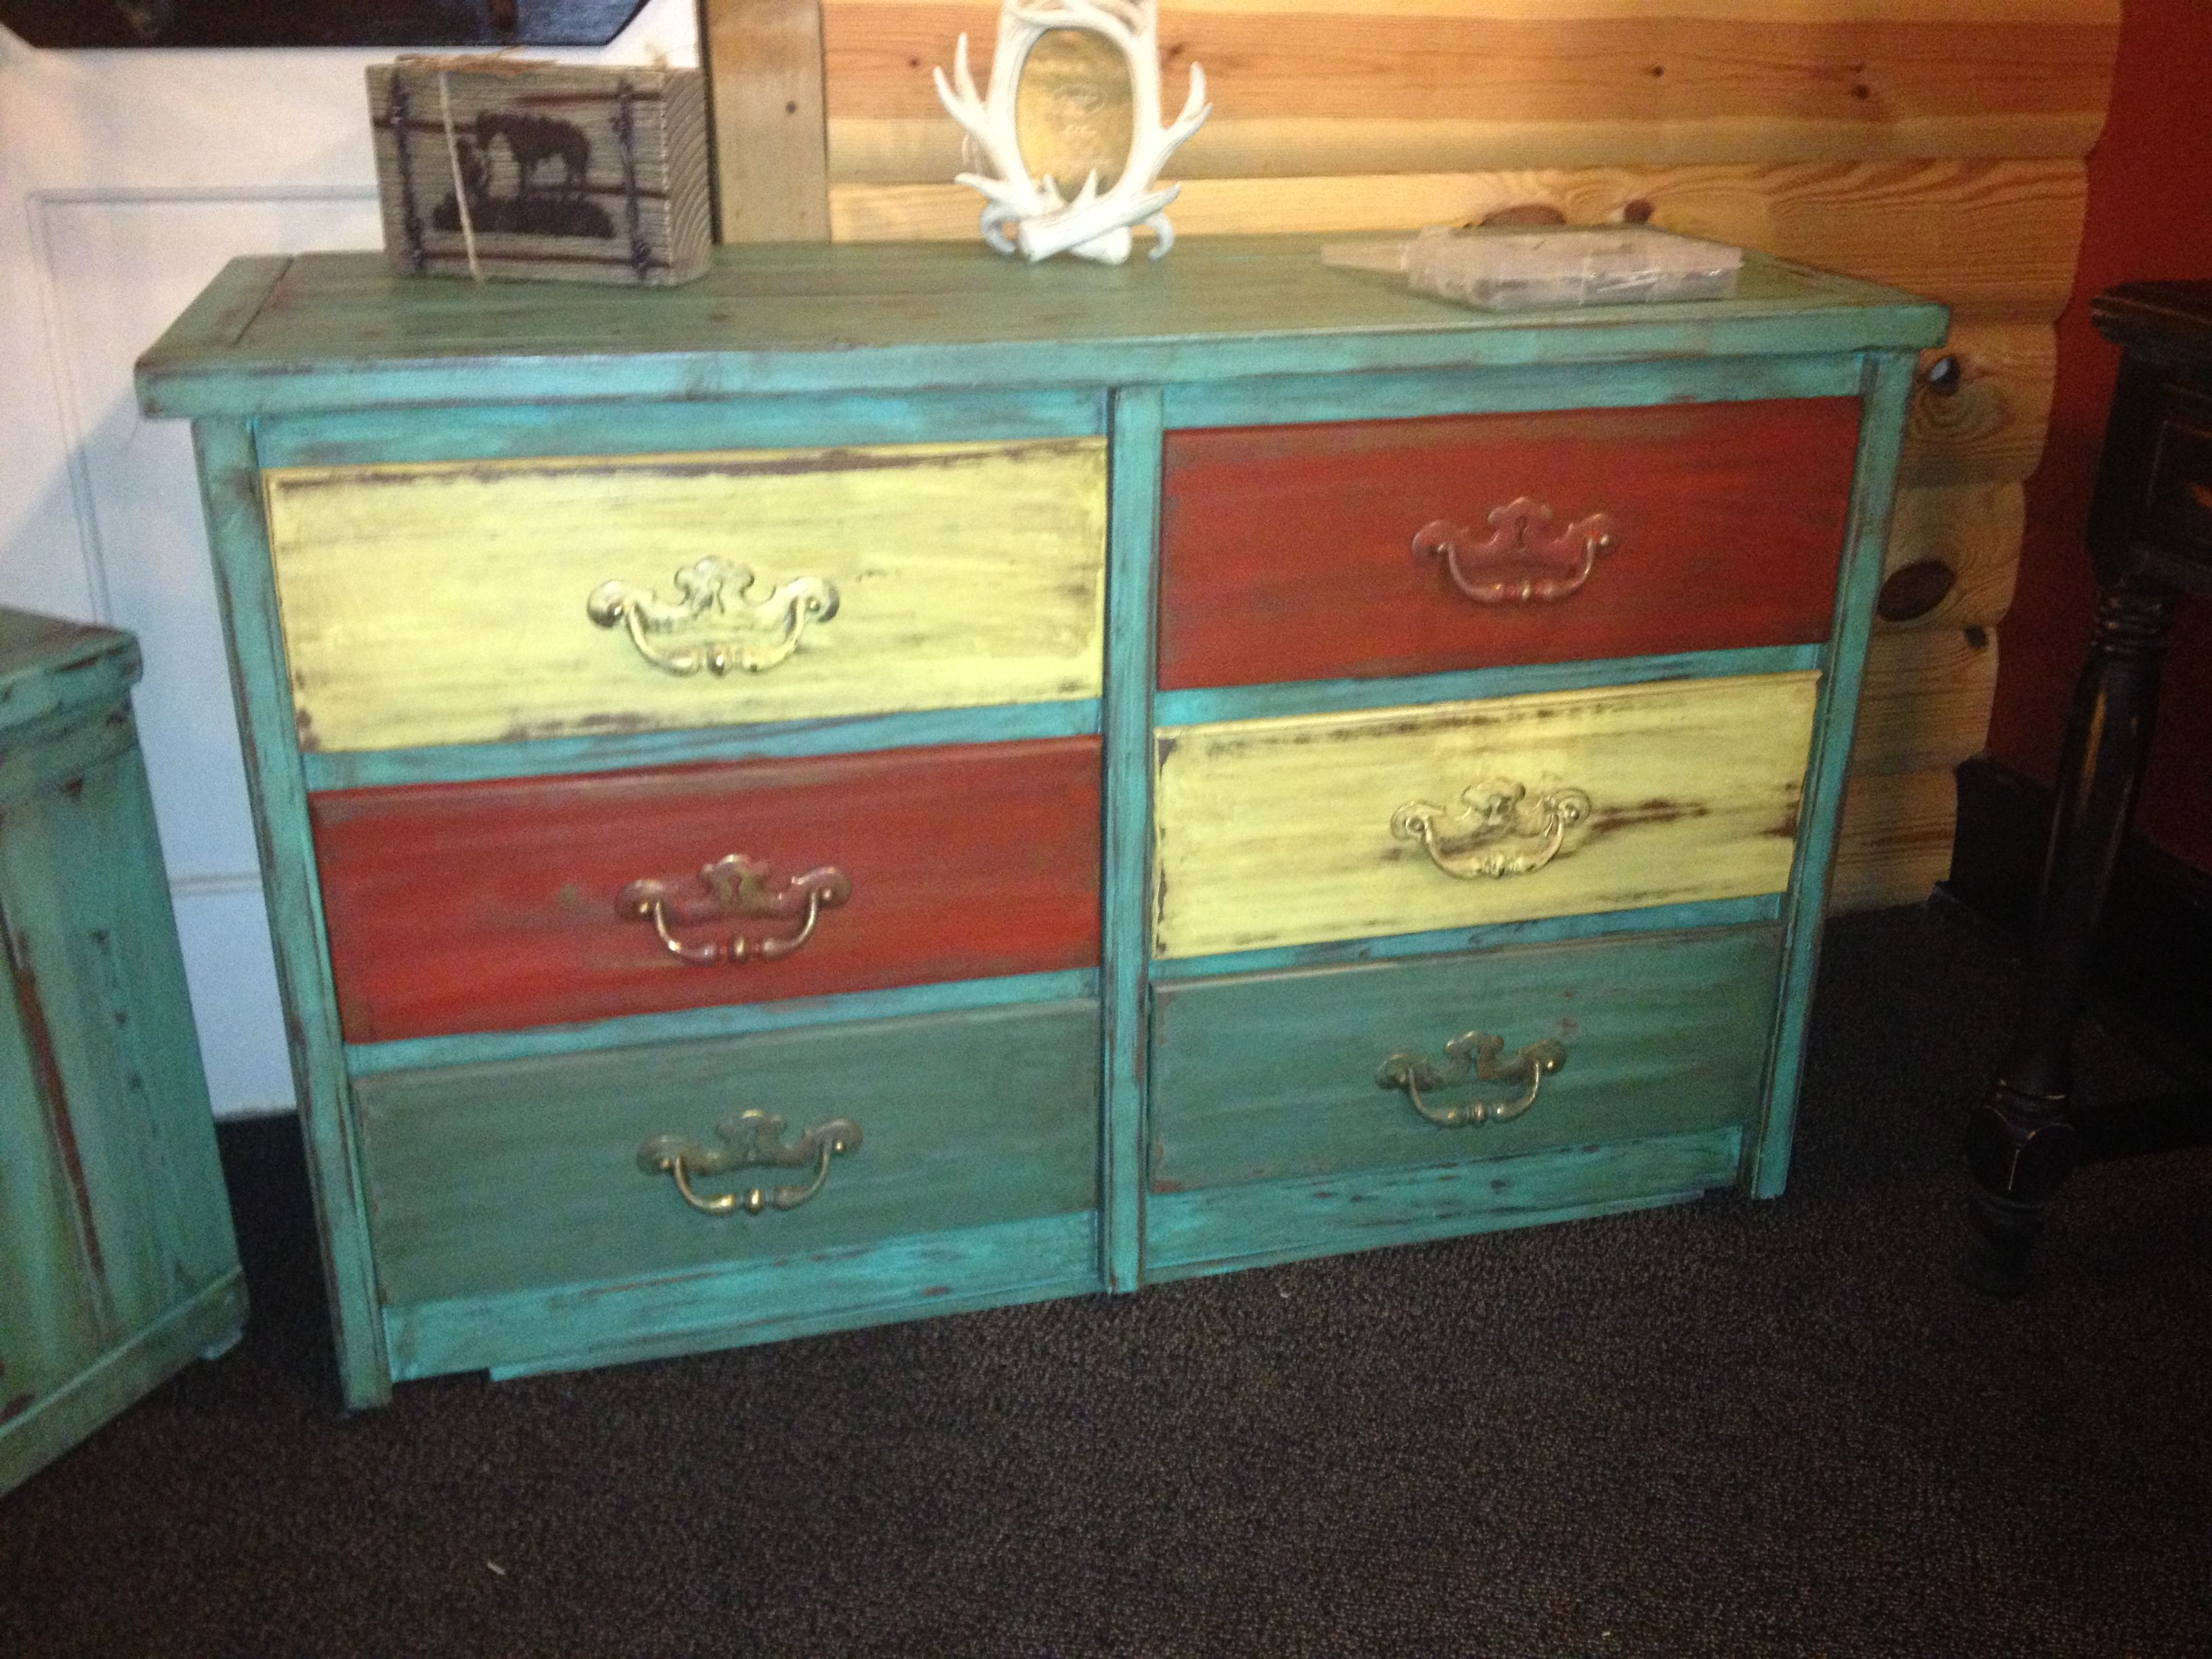 #A08F2B Explore 6 Drawer Dresser Dressers And More! with 3264x2448 px of Best Colorful Dressers Furniture 24483264 image @ avoidforclosure.info